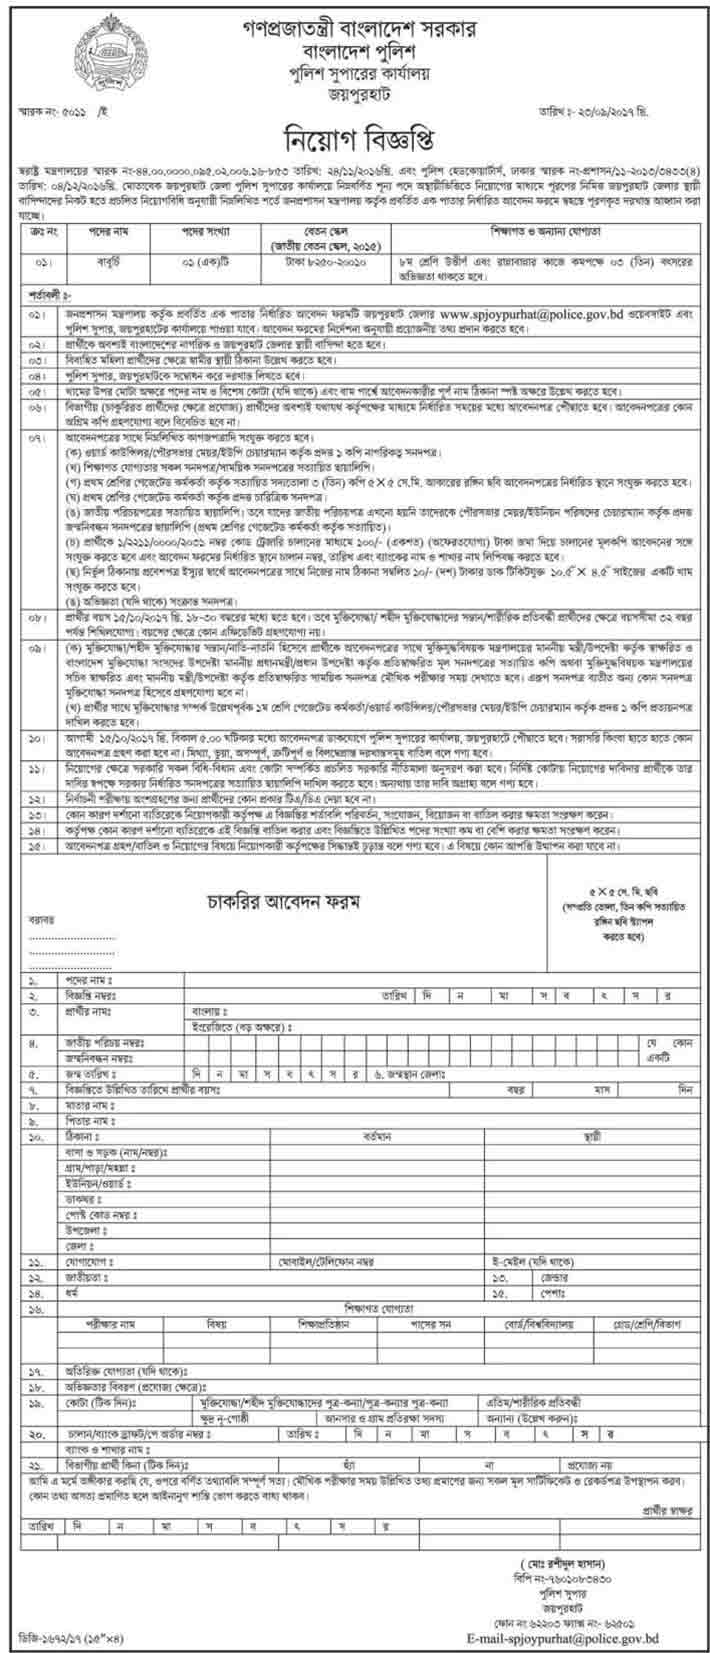 Joypurhat-Police-Super-Office-Job-Circular-2017